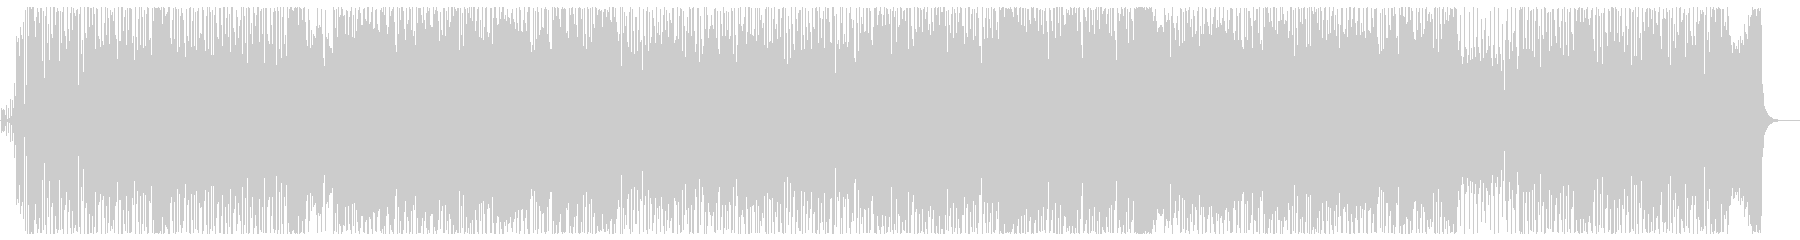 Refreshing and powerful melody's unreproduced waveform